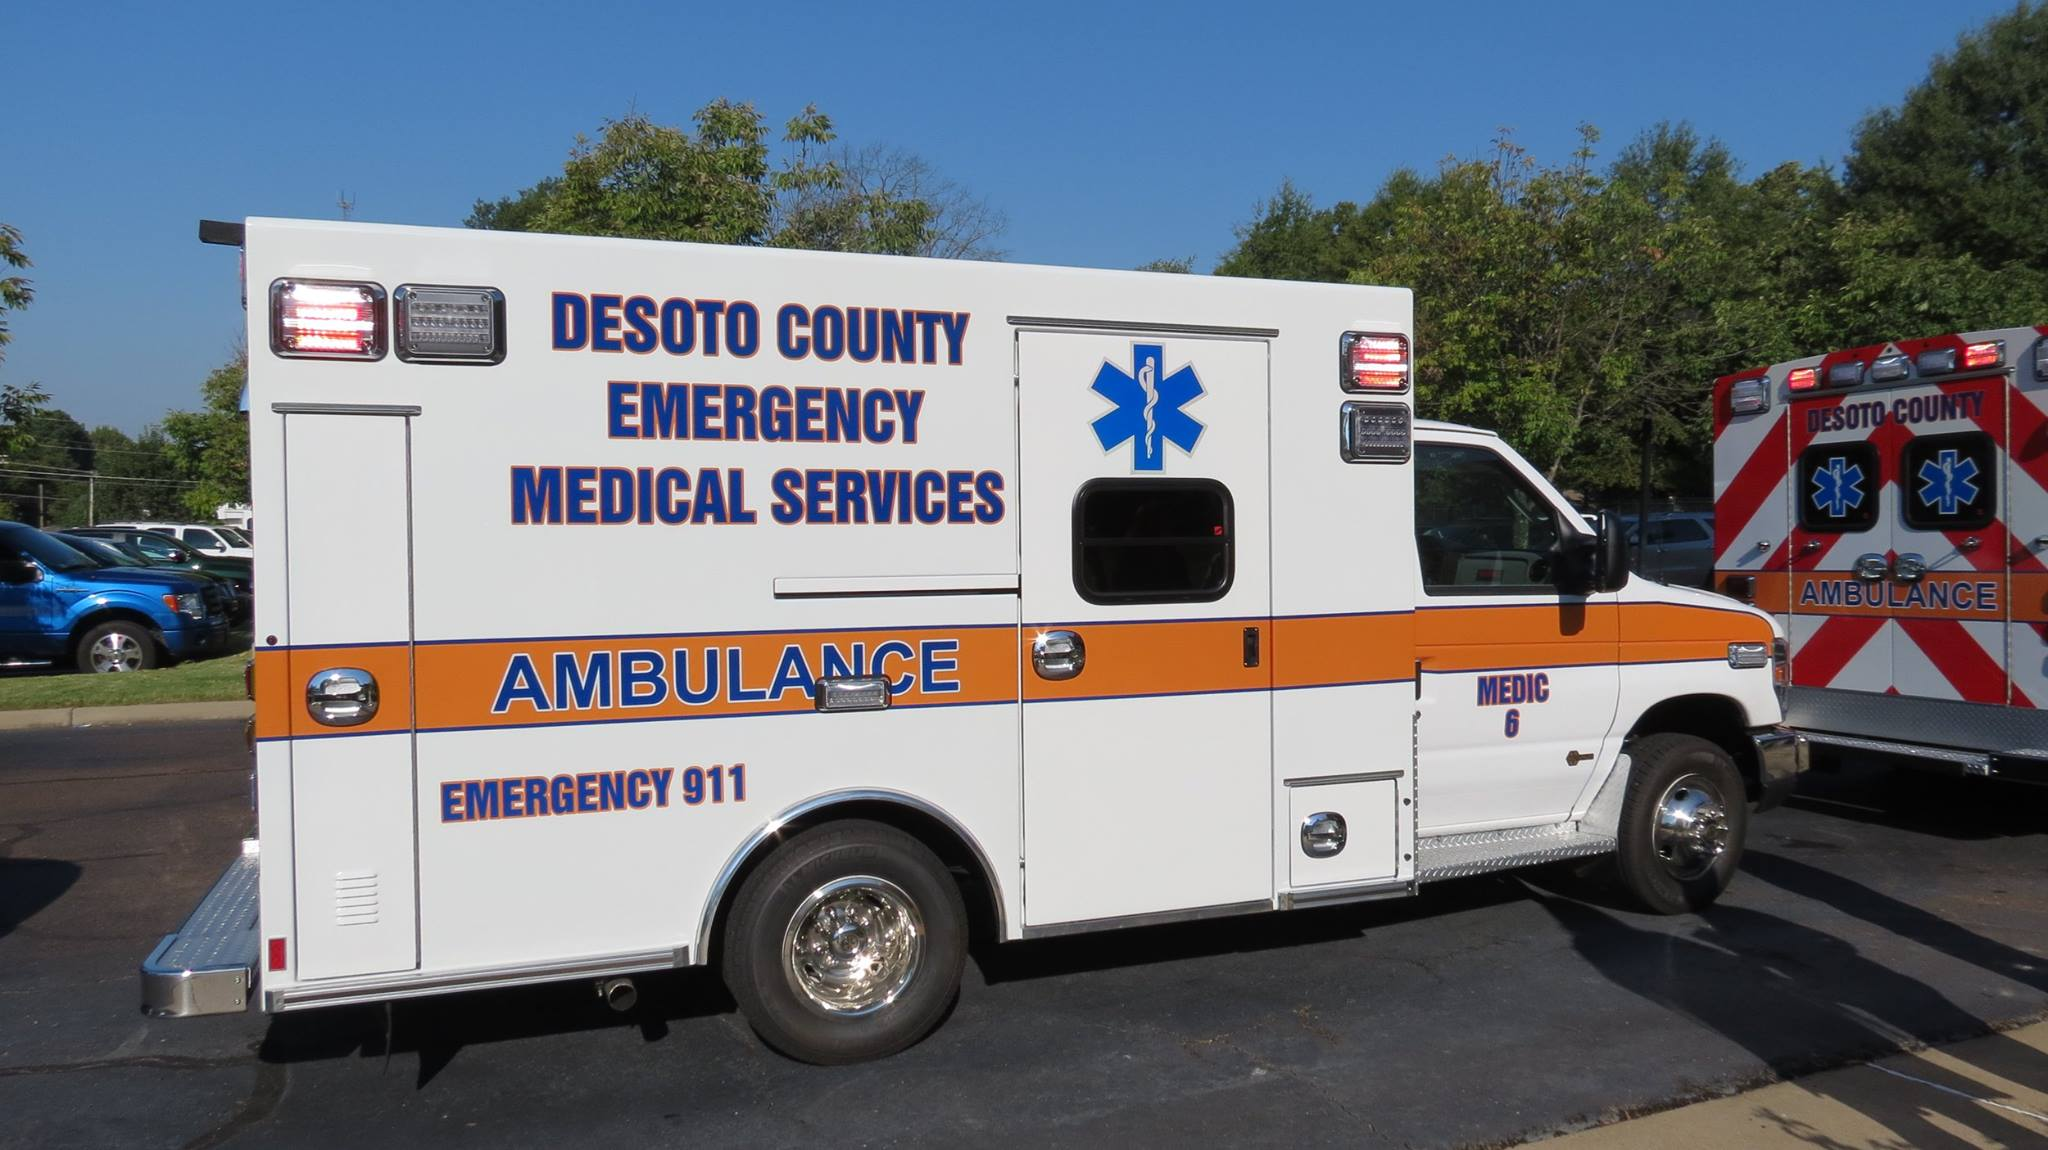 Ambulances_DeSoto County EMA.jpg